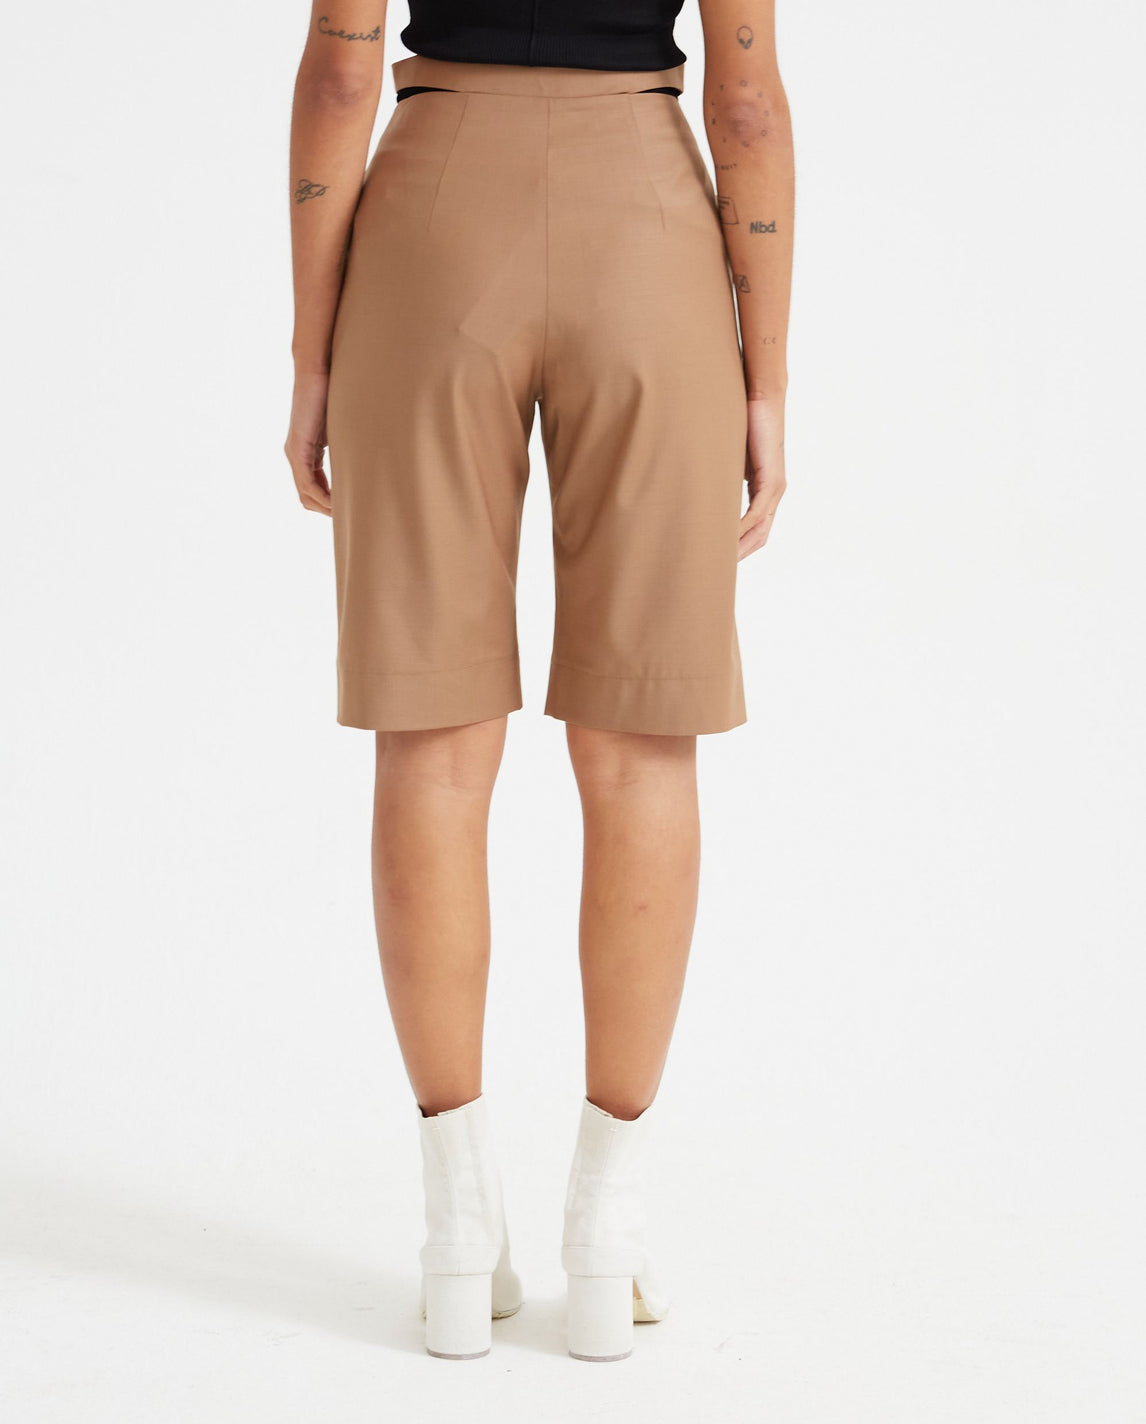 Deconstructed Tropical Wool Short - Caramel WOMENS MATERIEL